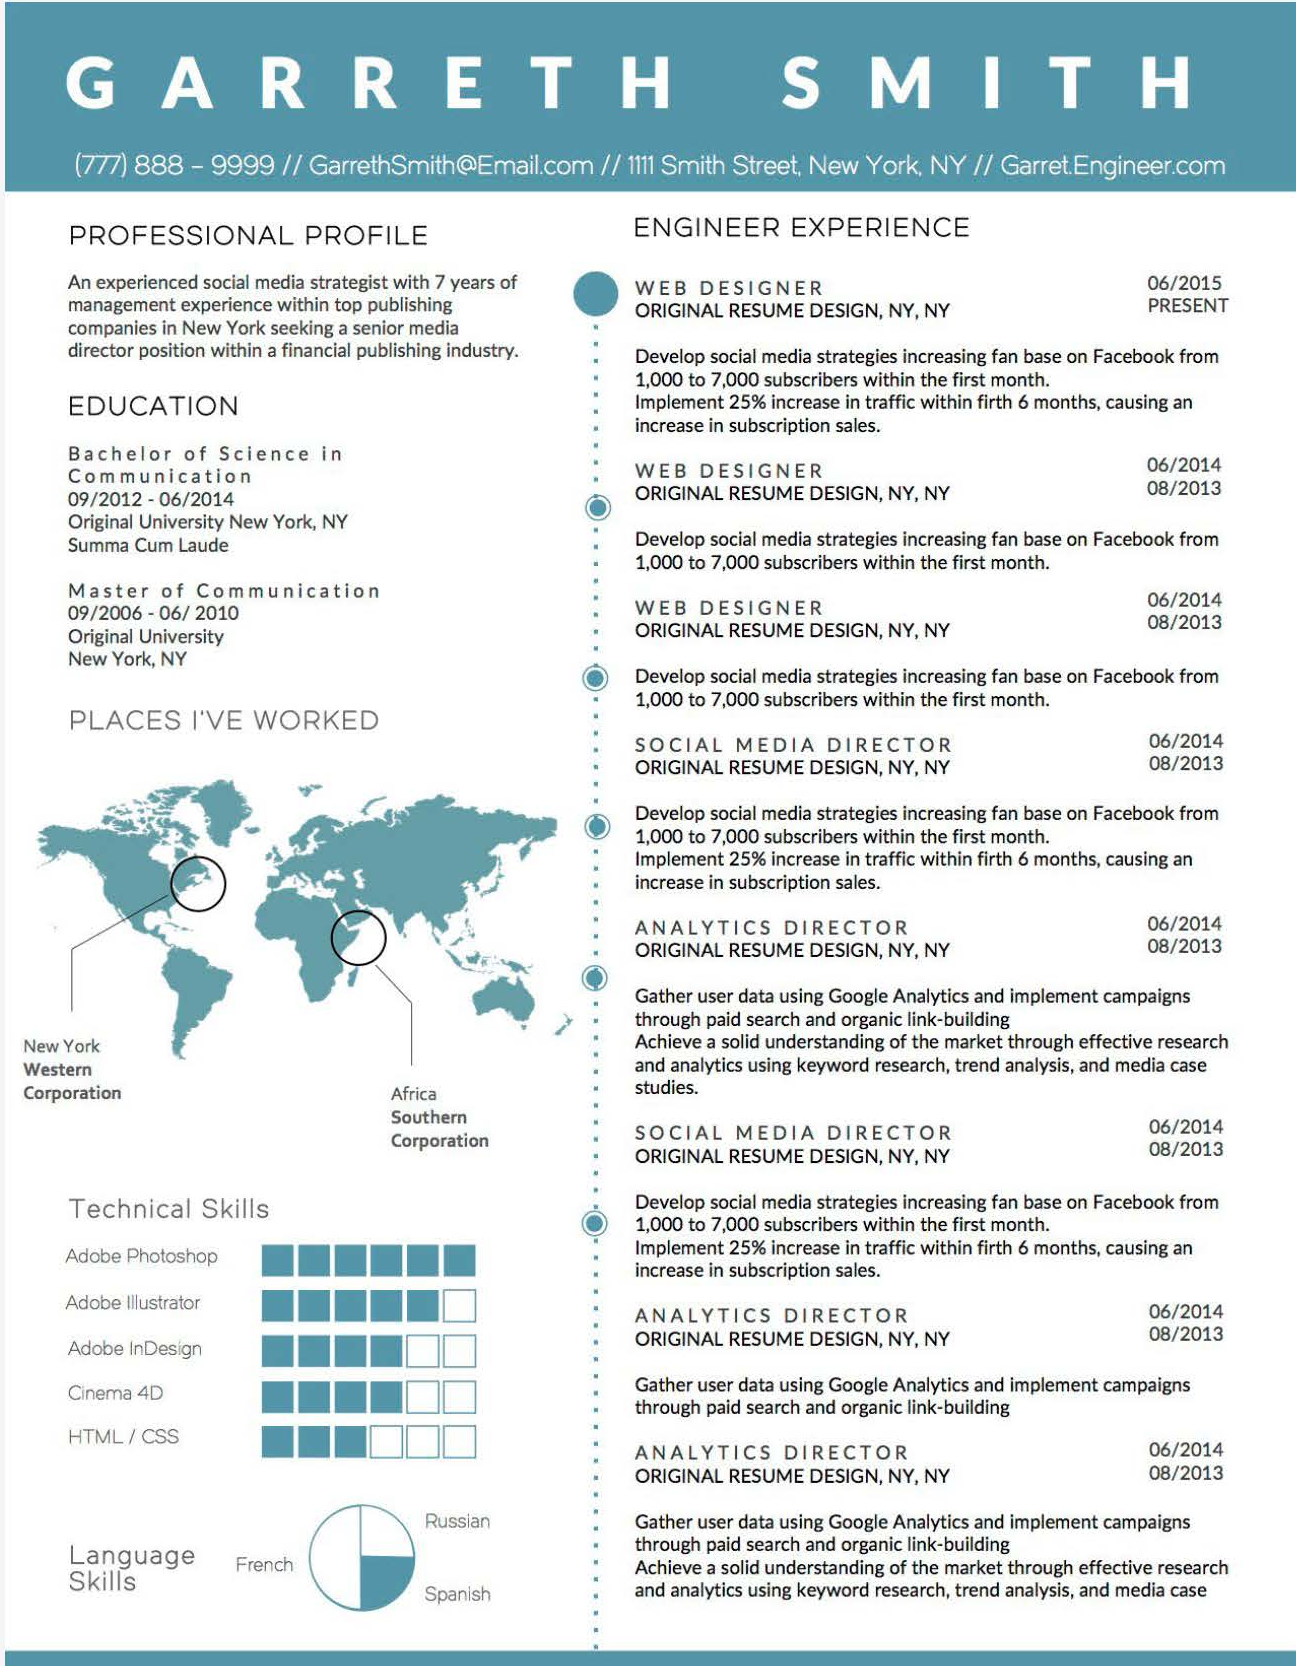 Downloadable Resume + Cover Template and Cover Letter Template for Microsoft Word and Apple Pages. This cover letter template is perfect for anyone in the fashion field. The template's design is a modern, unique, colorful, and professional. WE SWEAT THE DETAILS, SO YOU DON'T HAVE TO Stand Out Shop resume templates for Microsoft Word and Apple Pages will help you design a modern and professional resume in minutes! Simply download, open in Microsoft Word or Apple Pages, and input your resume's information. Increase your chances of landing your dream job with a job winning, modern, simple, and scannable resume template for Microsoft Word and Apple Pages. Creating a resume shouldn't suck Simply download a resume template from Stand Out Shop, enter your information in Microsoft Word or Apple Pages and get a beautifully formatted resume in seconds. Create a unique and vivid resume in minutes. Make an impressive resume. Customize your own layout in Microsoft Word or Apple Pages and introduce yourself in an impressive way. You can download your resume at any time. Stand out from other job seekers with a beautiful professional design.